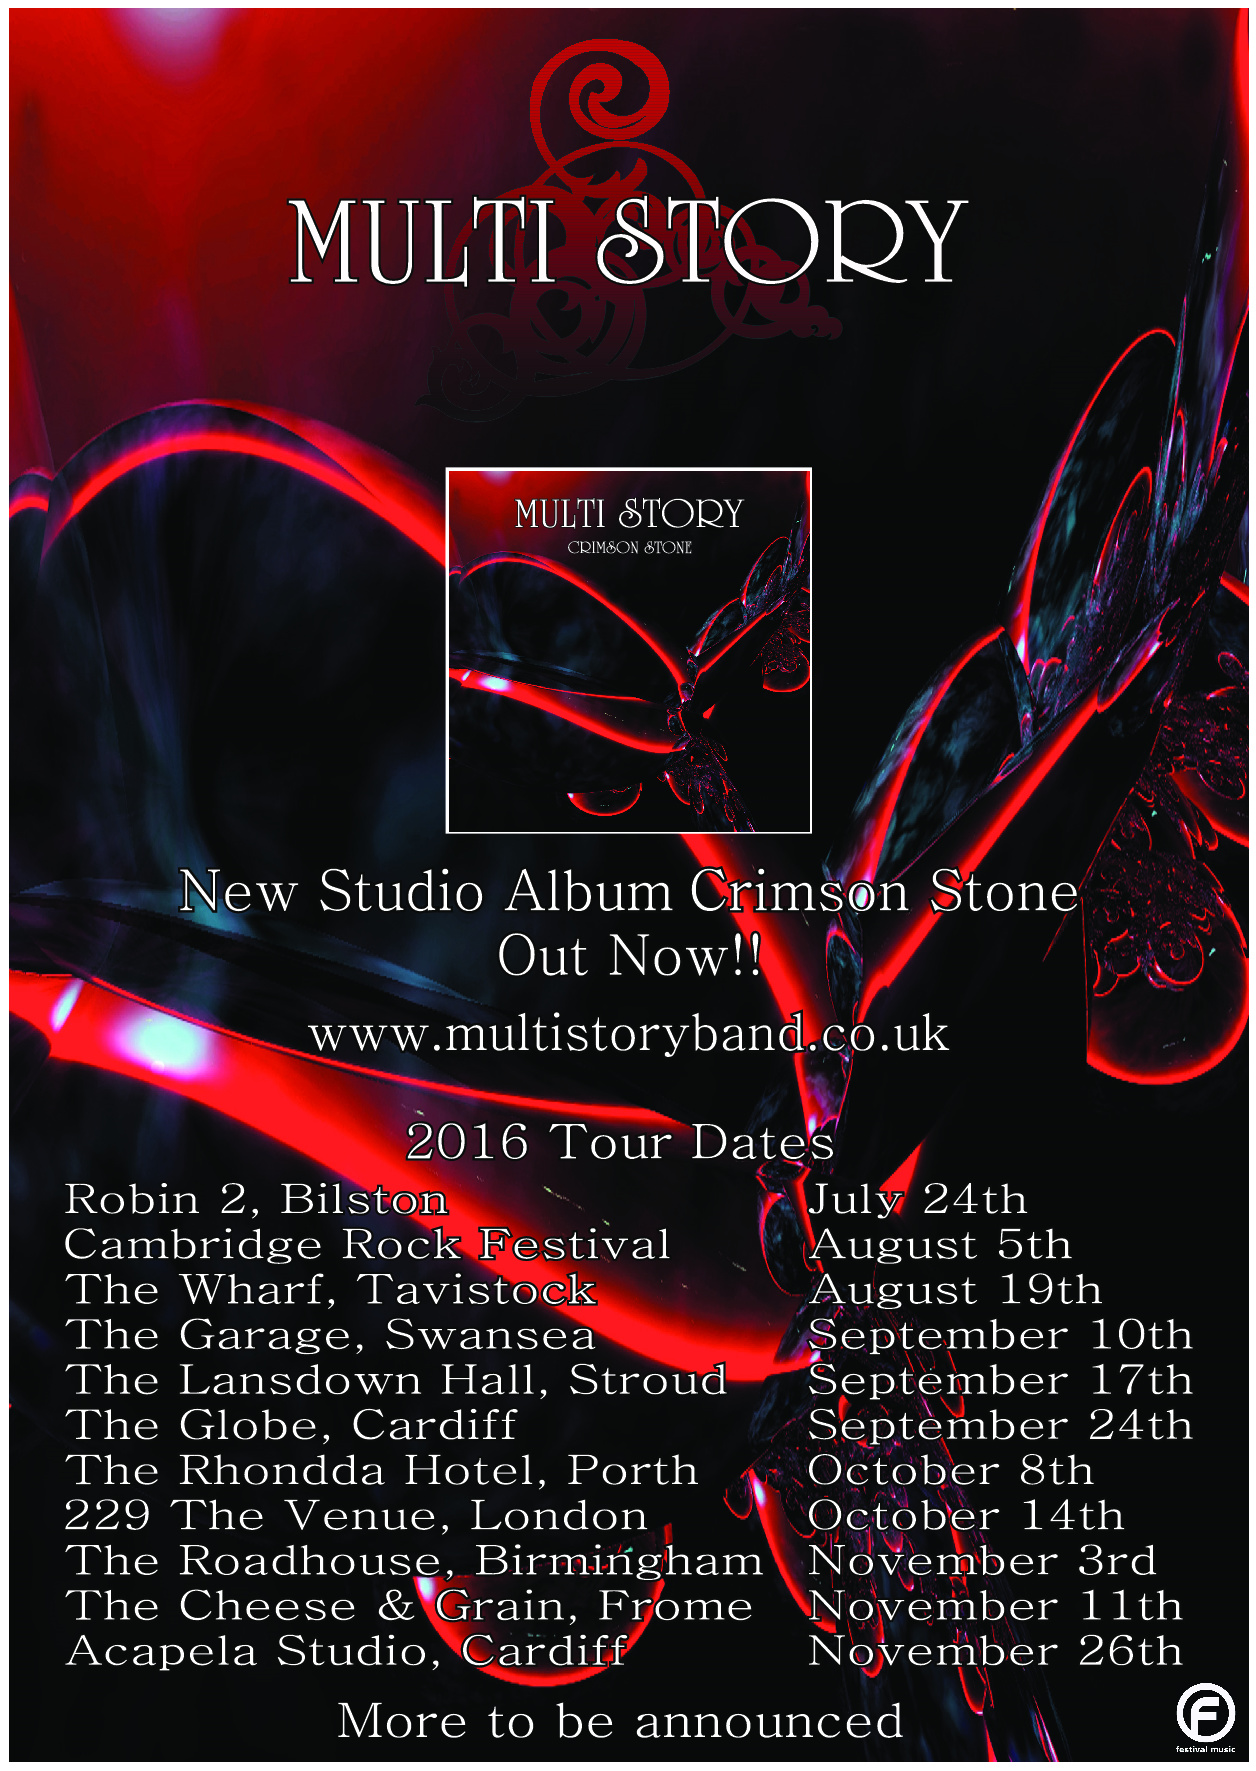 MS_Tour_Dates_Poster_2016 new